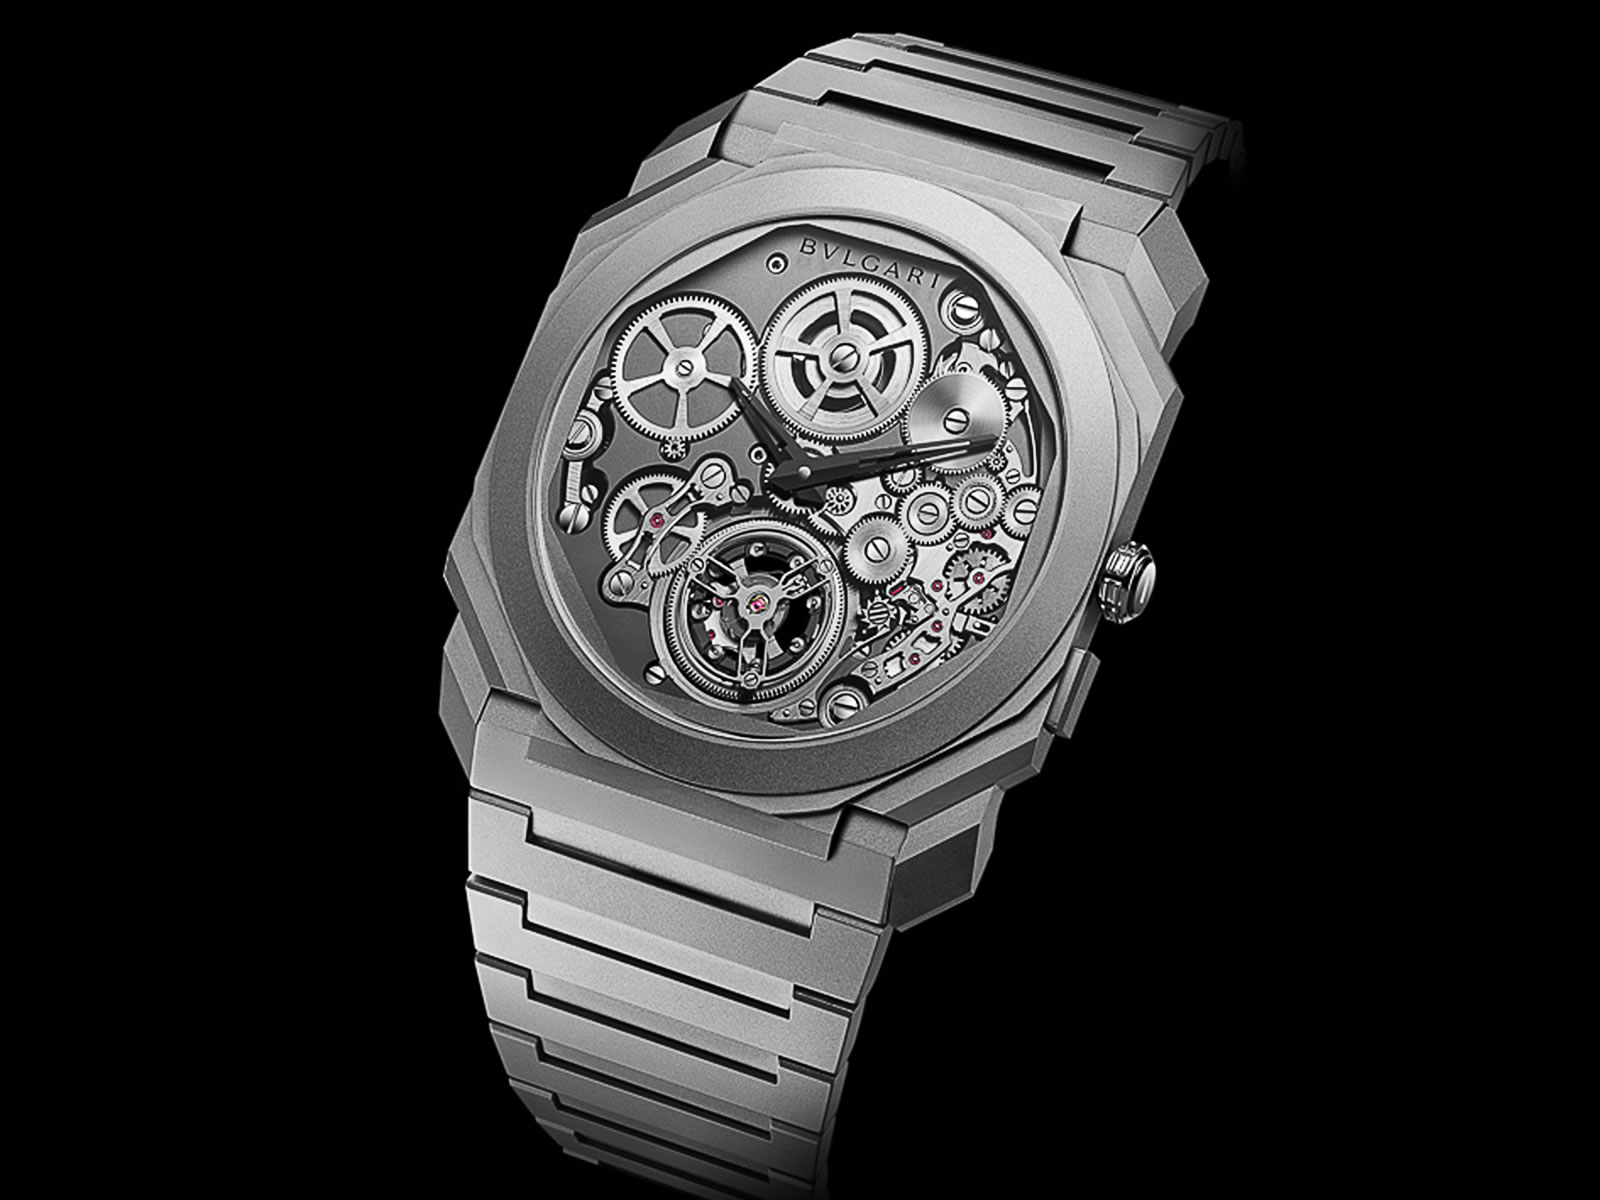 bulgari-octo-finissimo-thinnest-automatic-watch-2018-5-.jpg